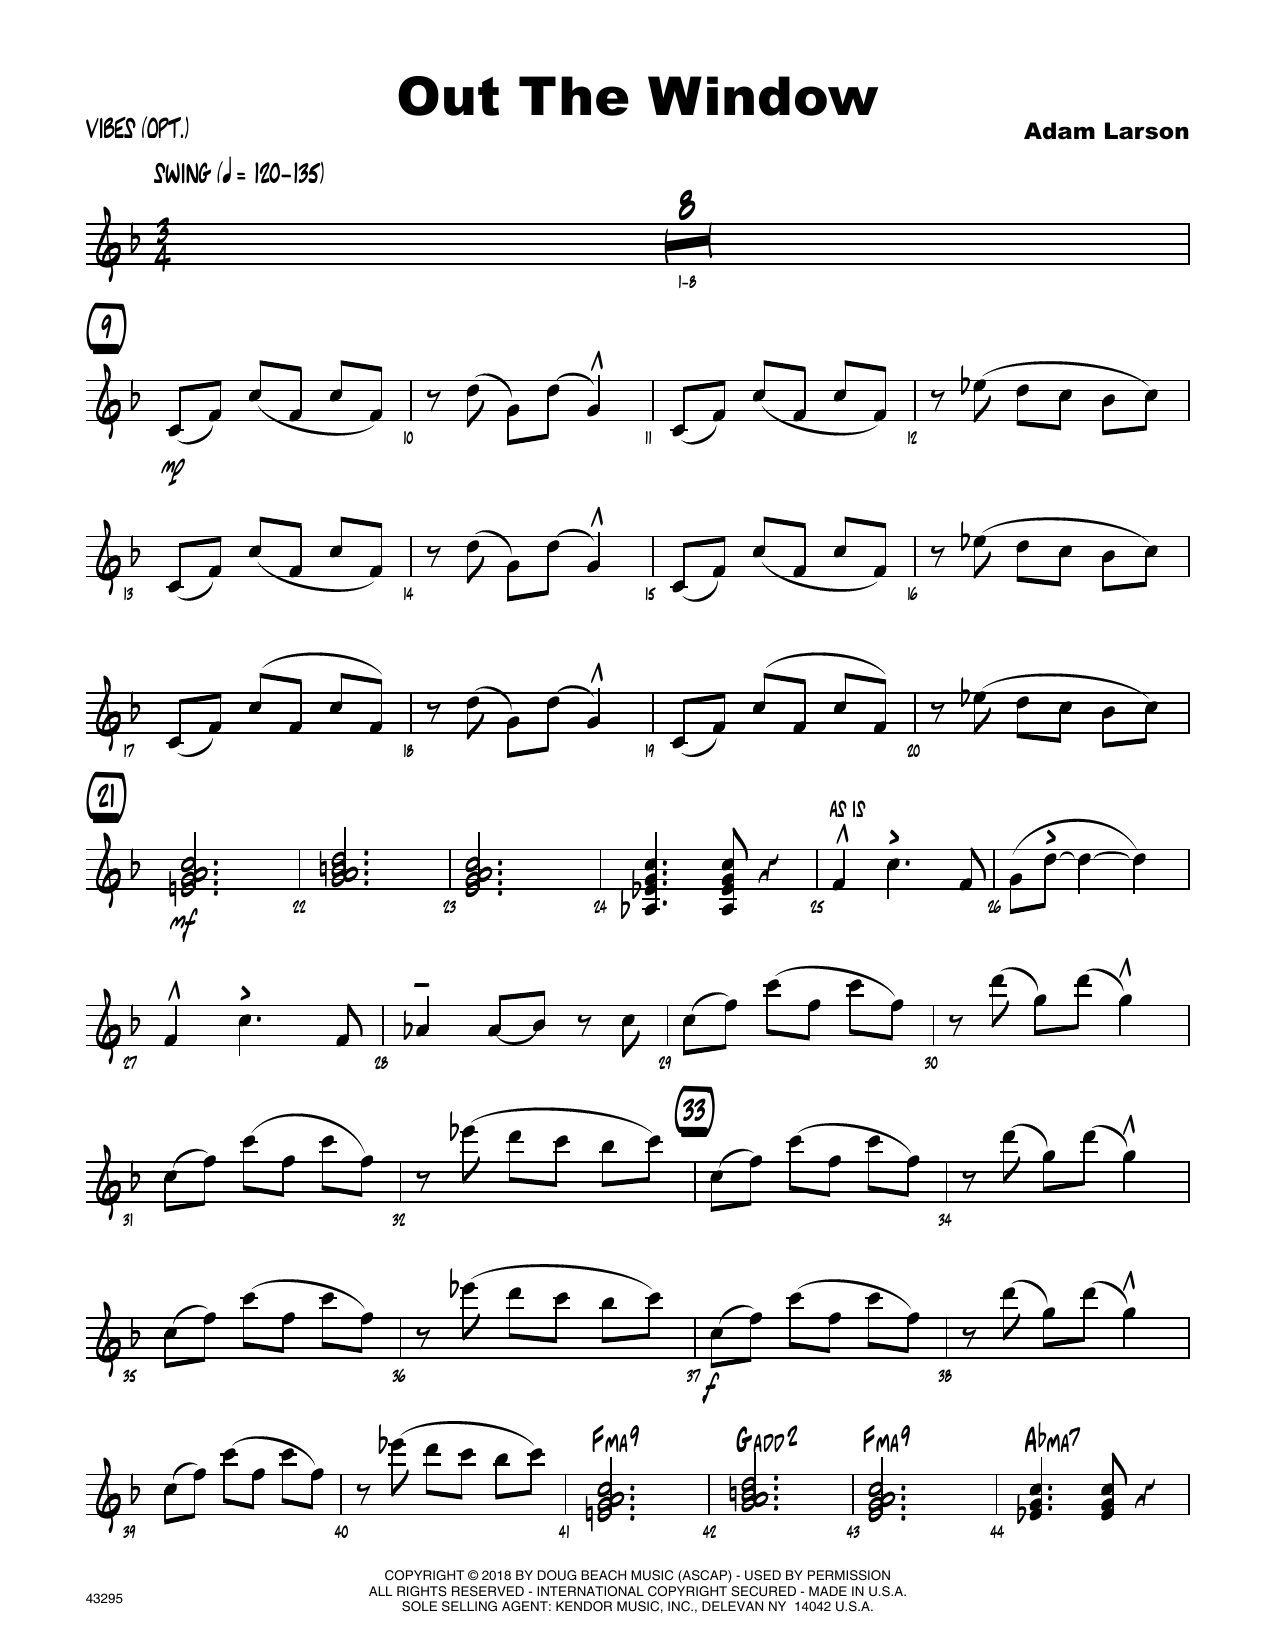 Adam Larson Out The Window - Vibes sheet music preview music notes and score for Jazz Ensemble including 4 page(s)